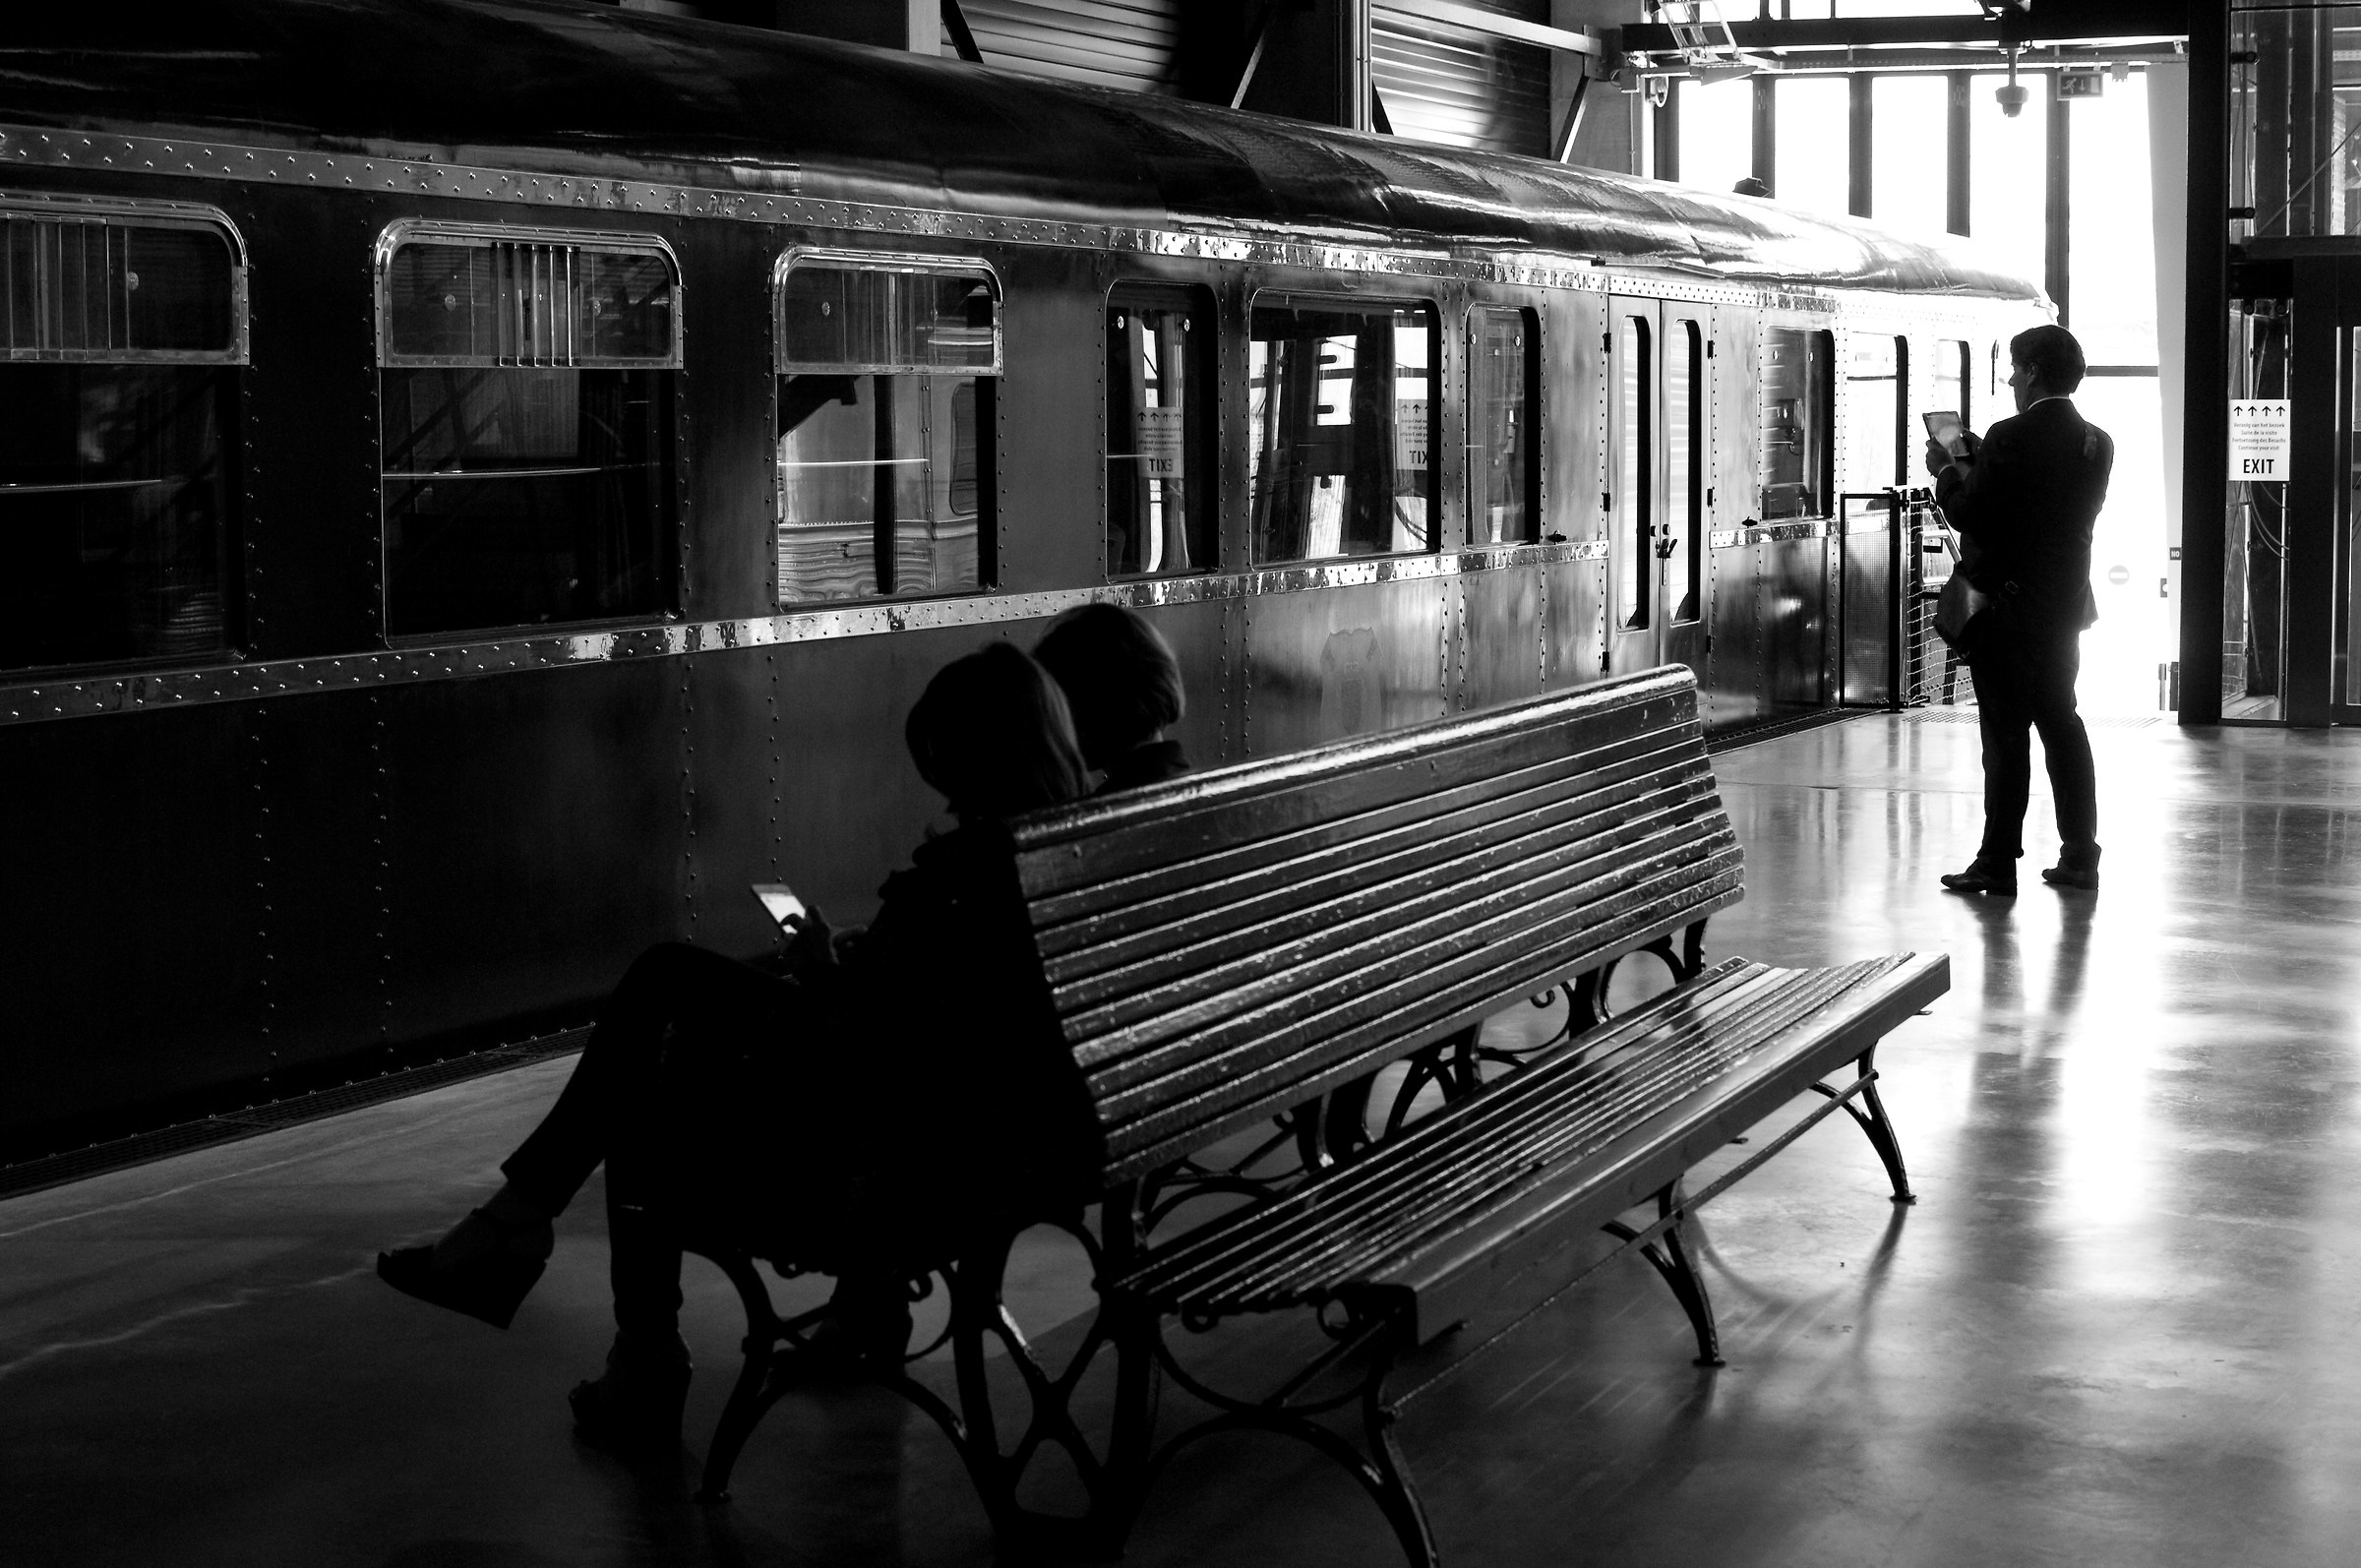 At the station...